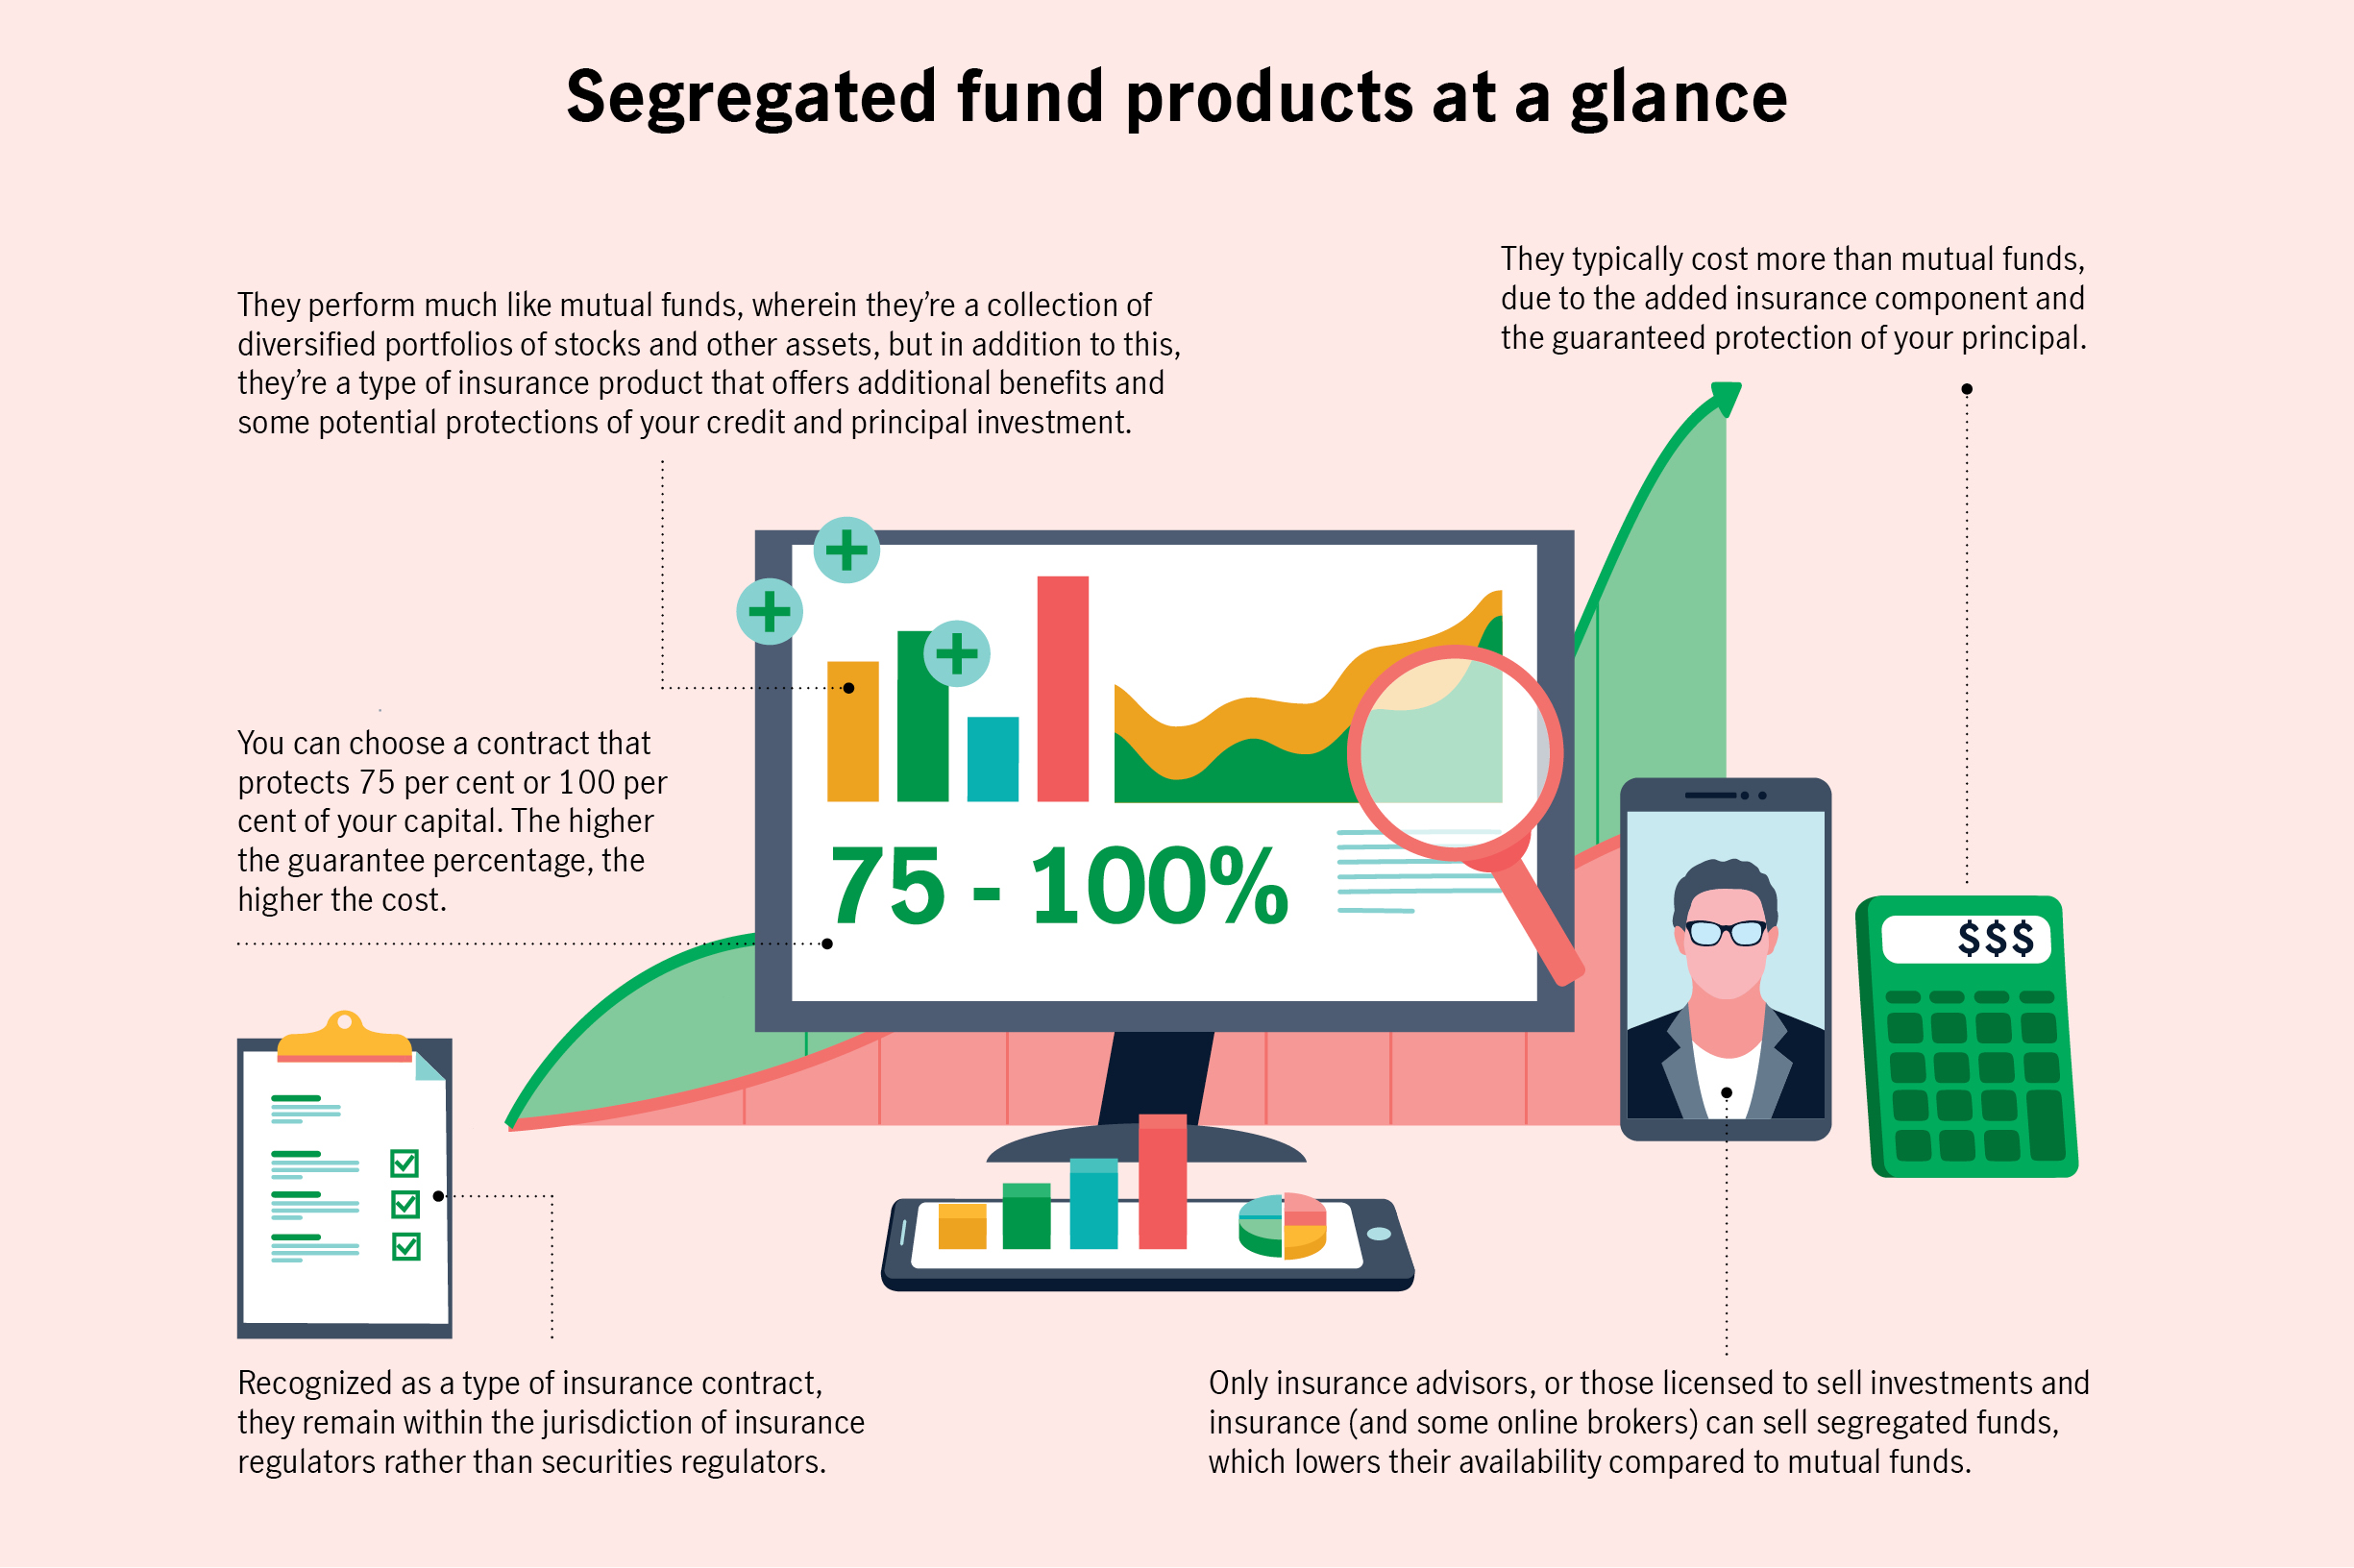 Segregated fund products at a glance 	They perform much like mutual funds, wherein they're a collection of diversified portfolios of stocks and other assets, but in addition to this, they're a type of insurance product that offers additional benefits and some potential protections of your credit and principal investment. 	They typically cost more than mutual funds, due to the added insurance component and the guaranteed protection of your principal. 	You can choose a contract that protects 75 per cent or 100 per cent of your capital. The higher the guarantee percentage, the higher the cost. 	Only insurance advisors, or those licensed to sell investments and insurance (and some online brokers) can sell segregated funds, which lowers their availability compared to mutual funds. 	Recognized as a type of insurance contract, they remain within the jurisdiction of insurance regulators rather than securities regulators.